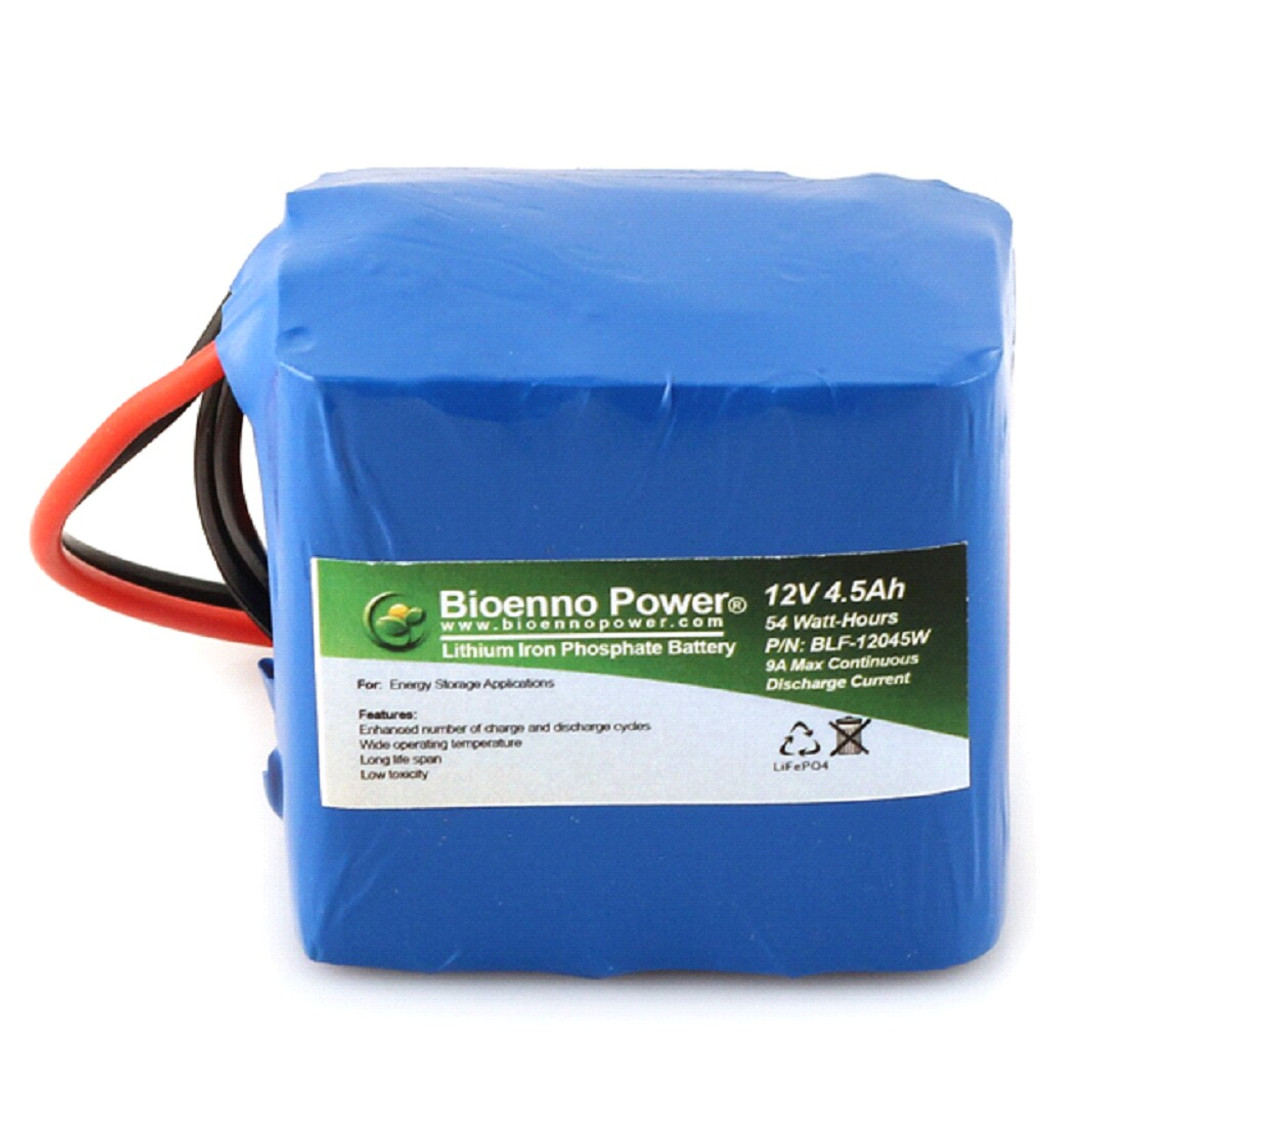 Bioenno Power 12 Volt, 4.5 Amp Hour Lithium Iron Phosphate Battery